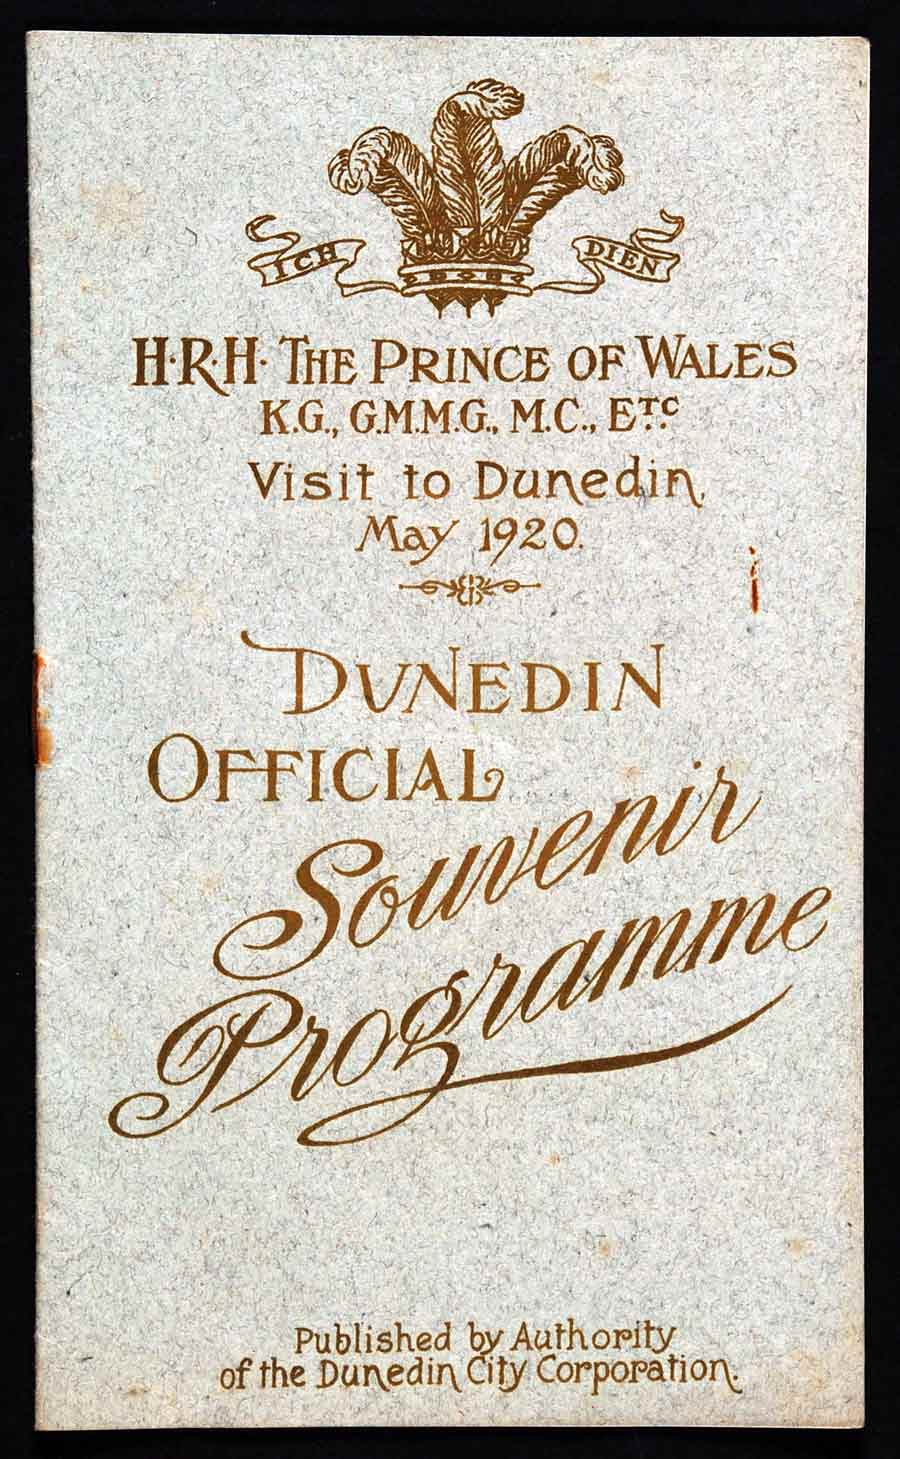 Official souvenir programme; H.R.H. the Prince of Wales … visit to Dunedin, May 1920. Dunedin: Dunedin City Corporation, printed by J. Wilkie & Co. Ltd., [1920].